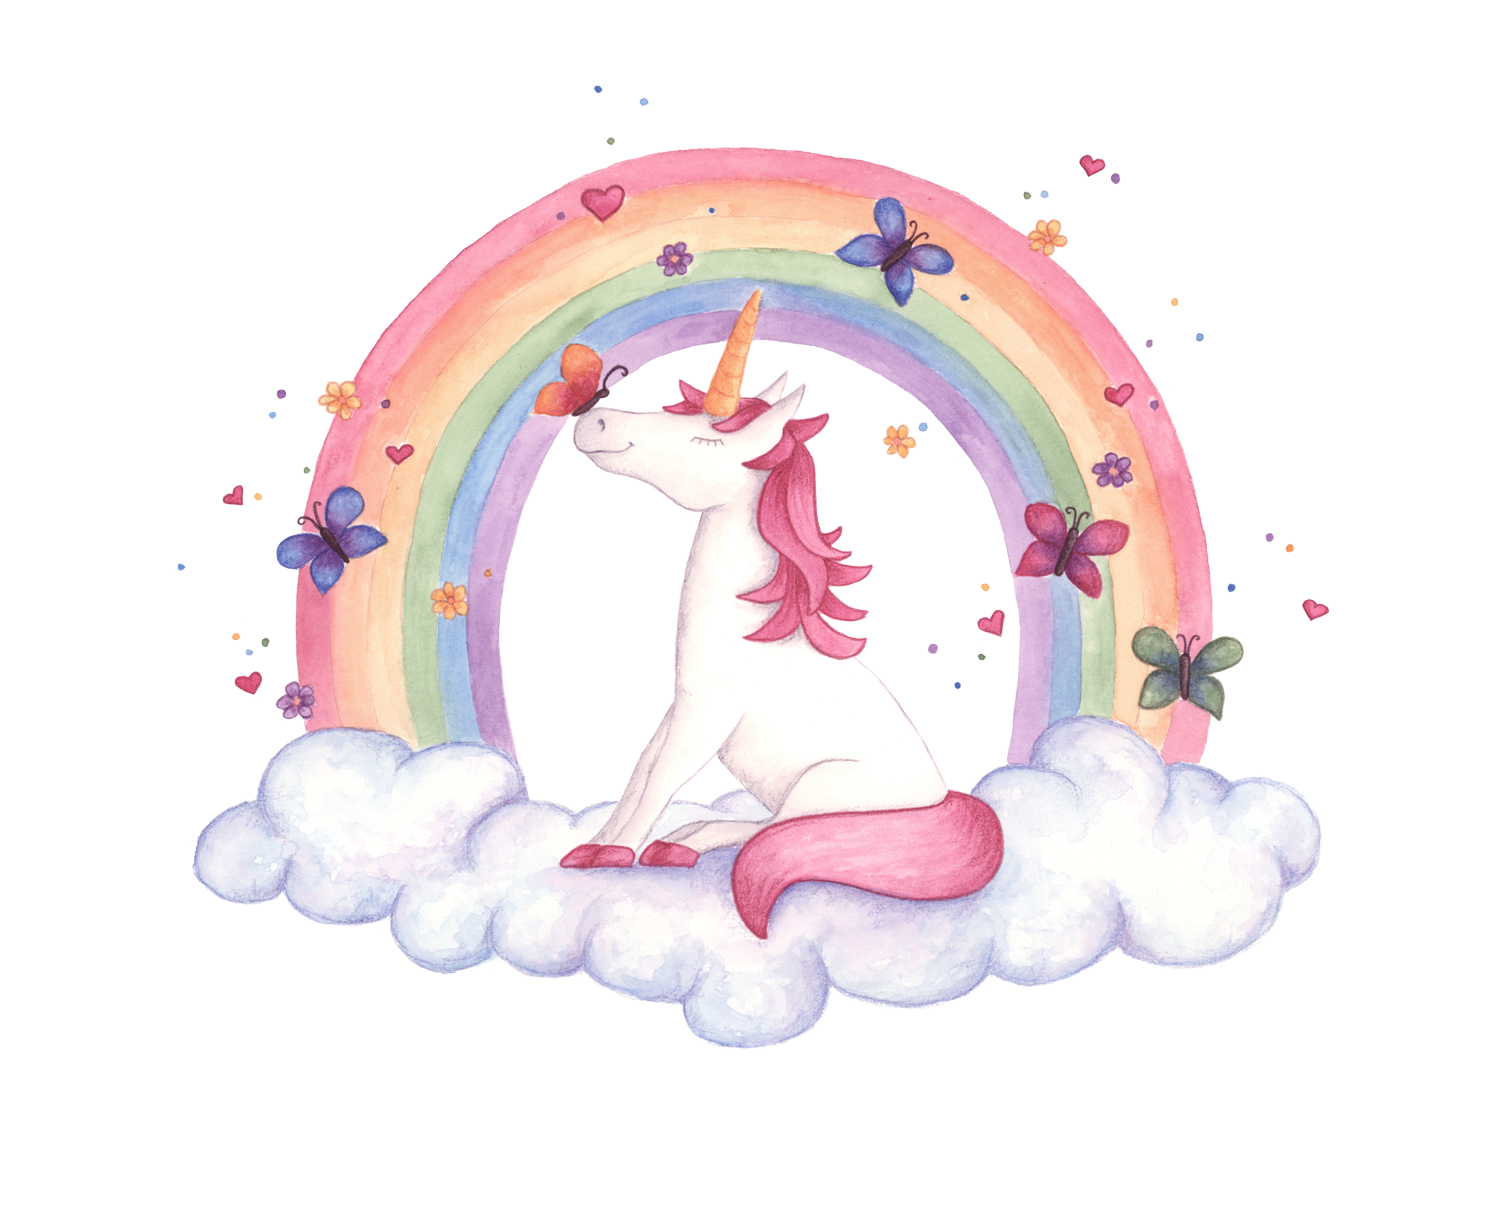 Watercolour unicorn illustration by. Kite clipart watercolor